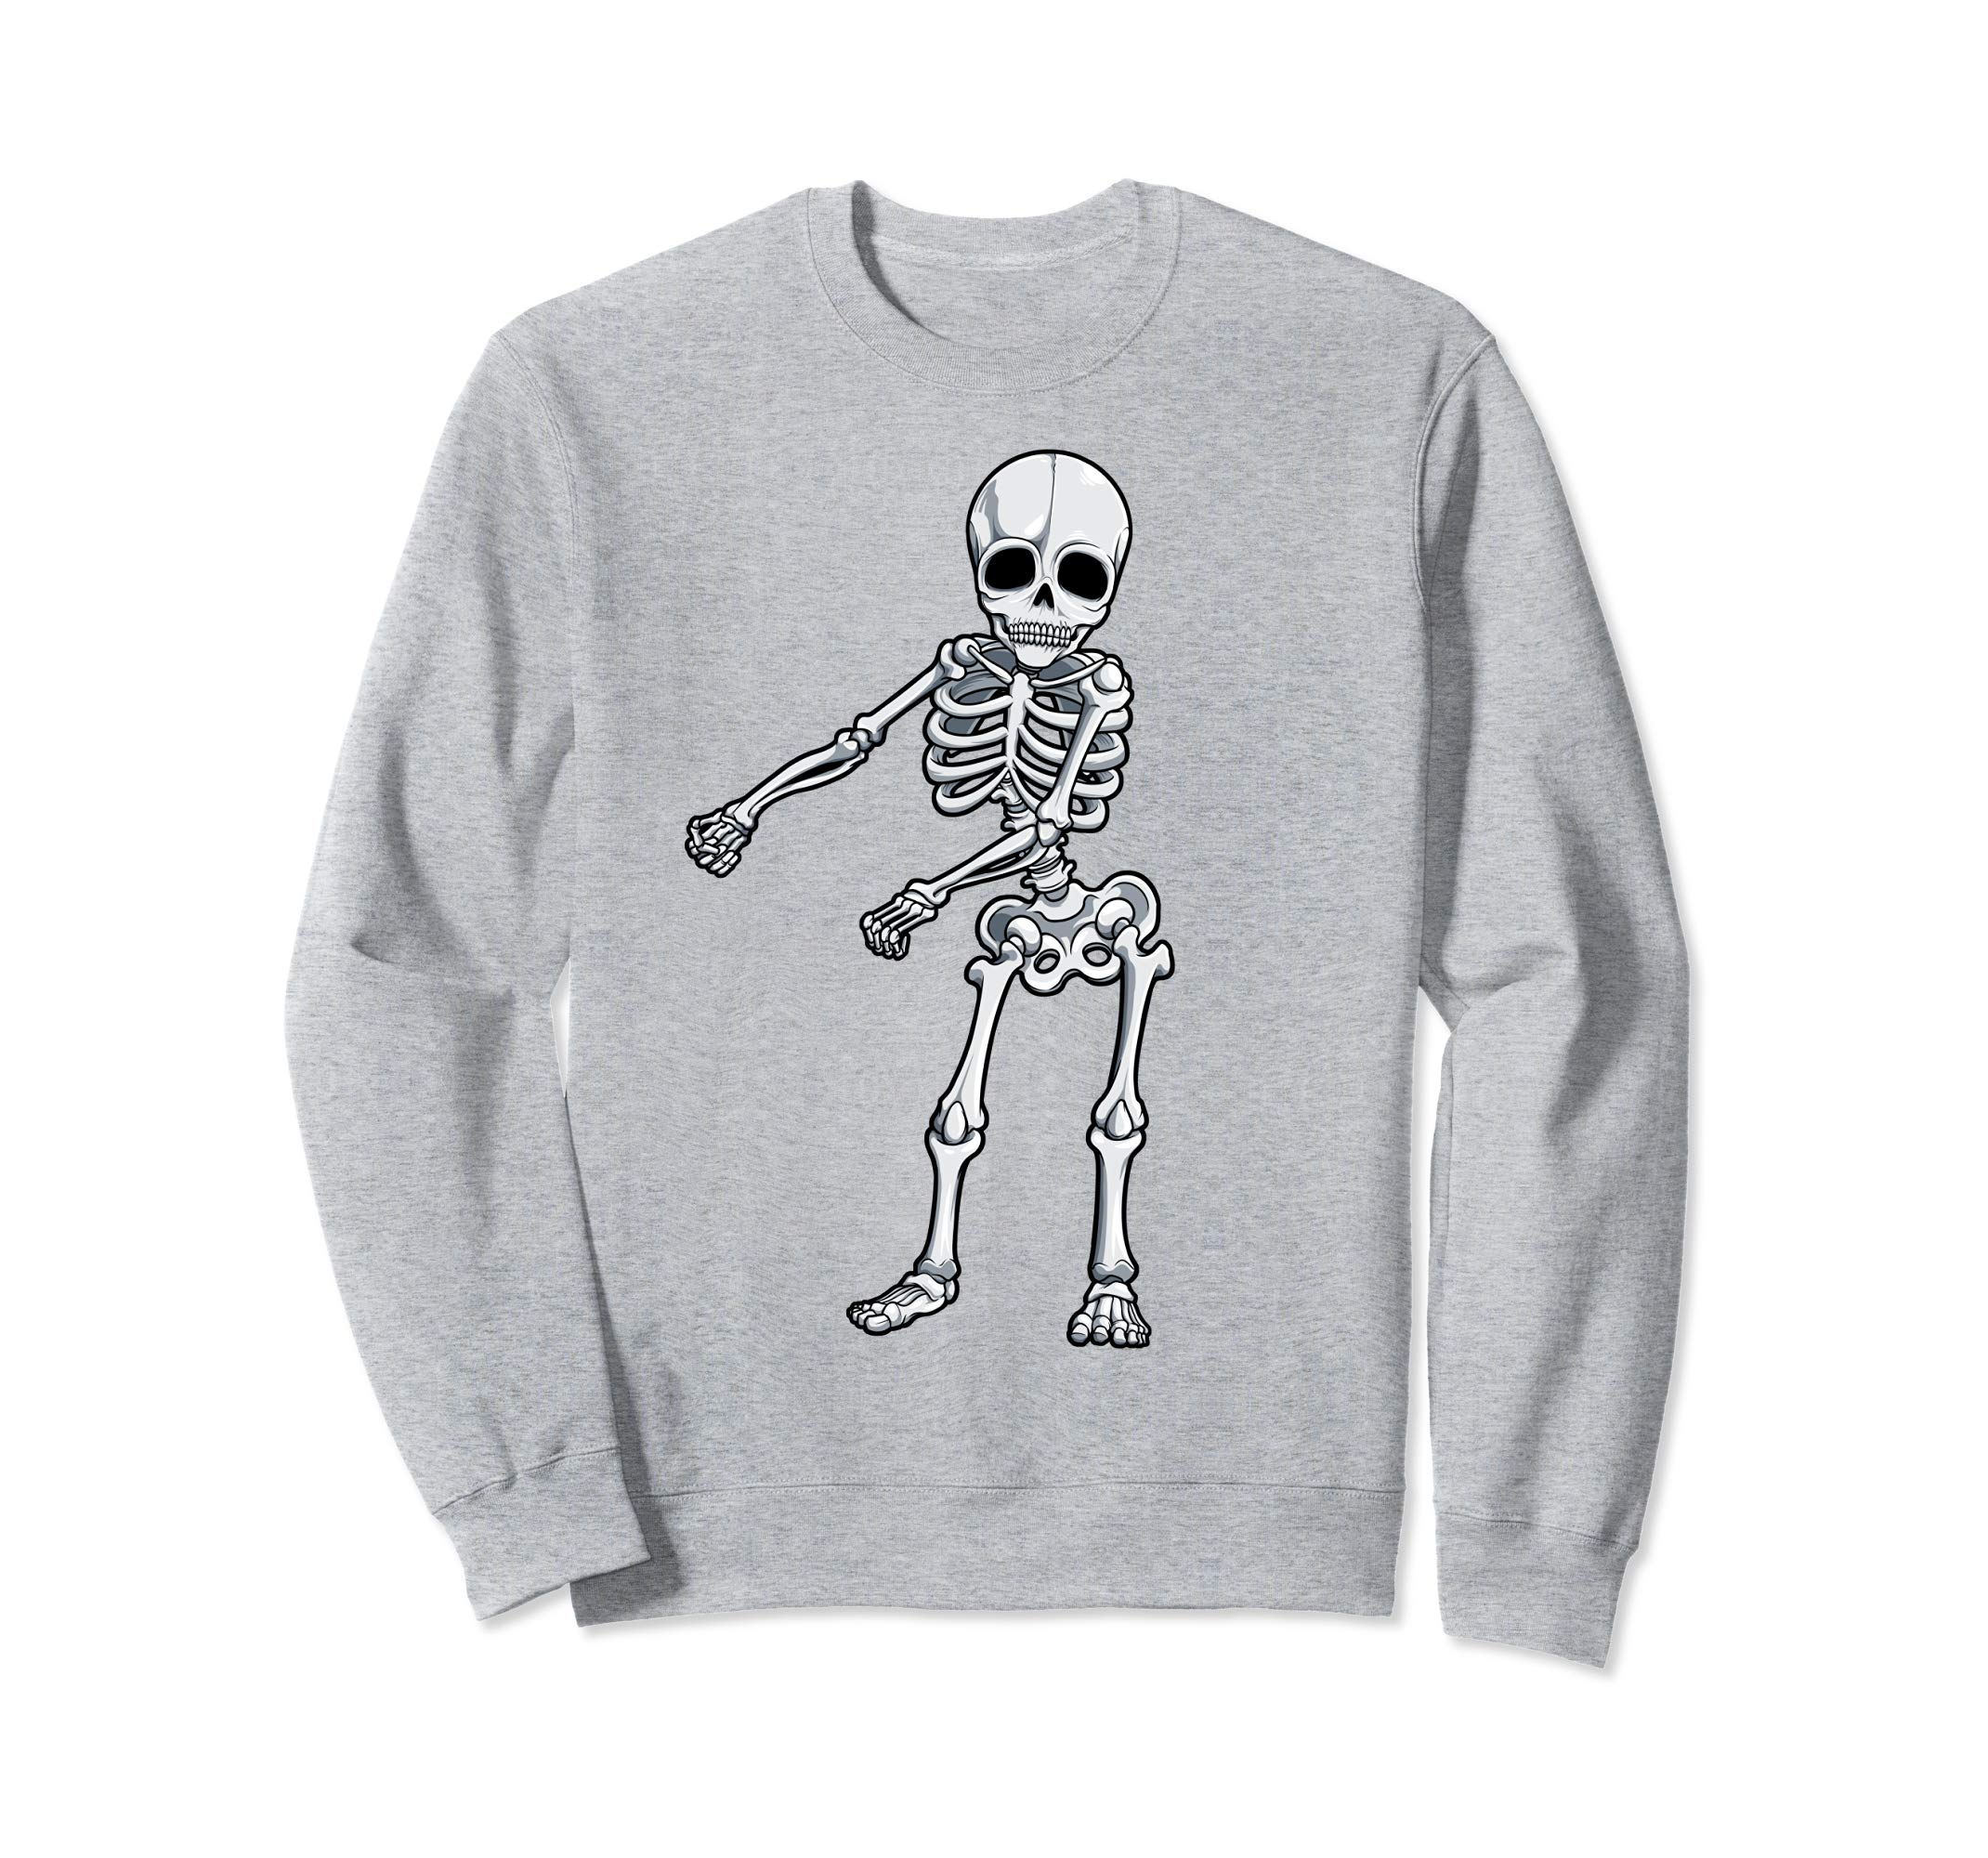 Floss Dance Skeleton Sweatshirt SR01